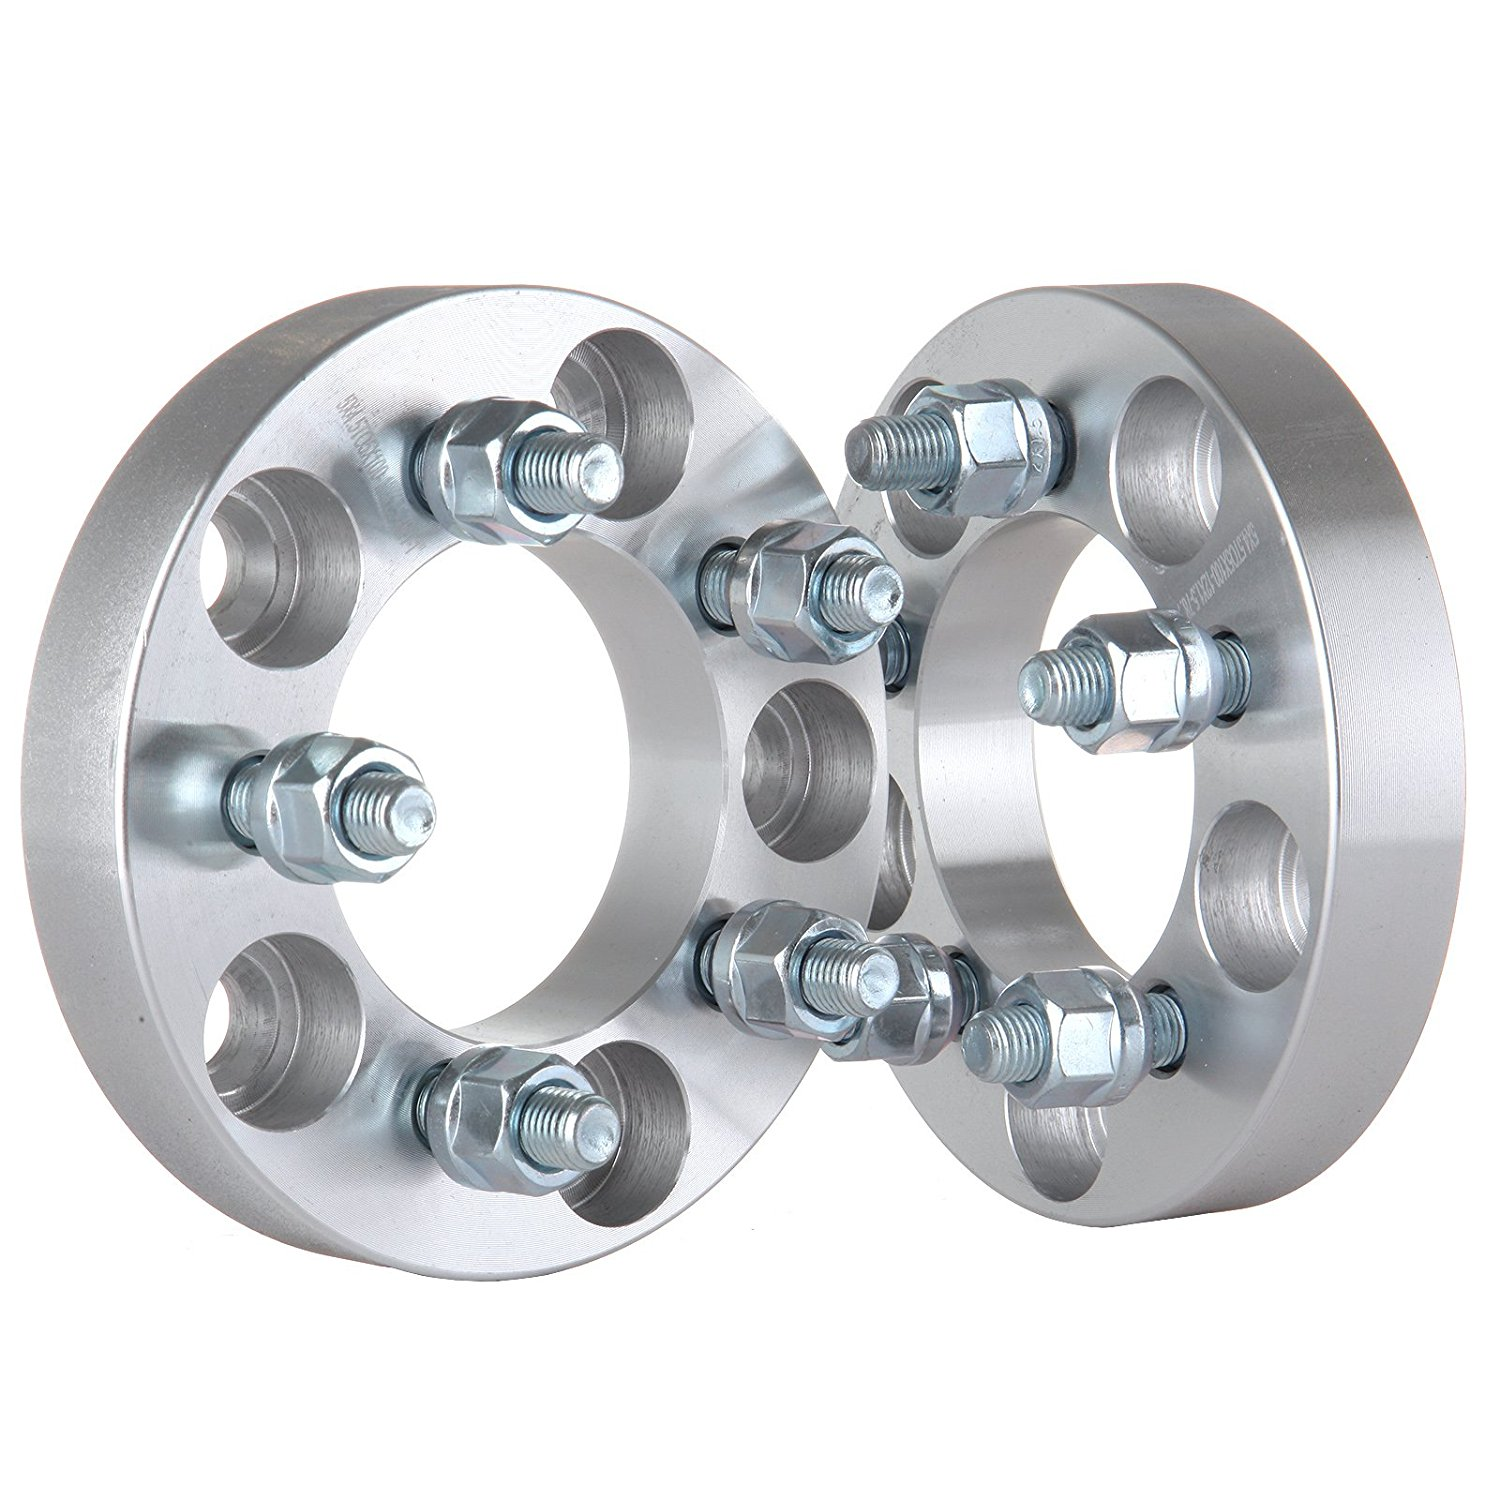 Cheap 4x100 15mm Wheel Spacers, Find 4x100 15mm Wheel